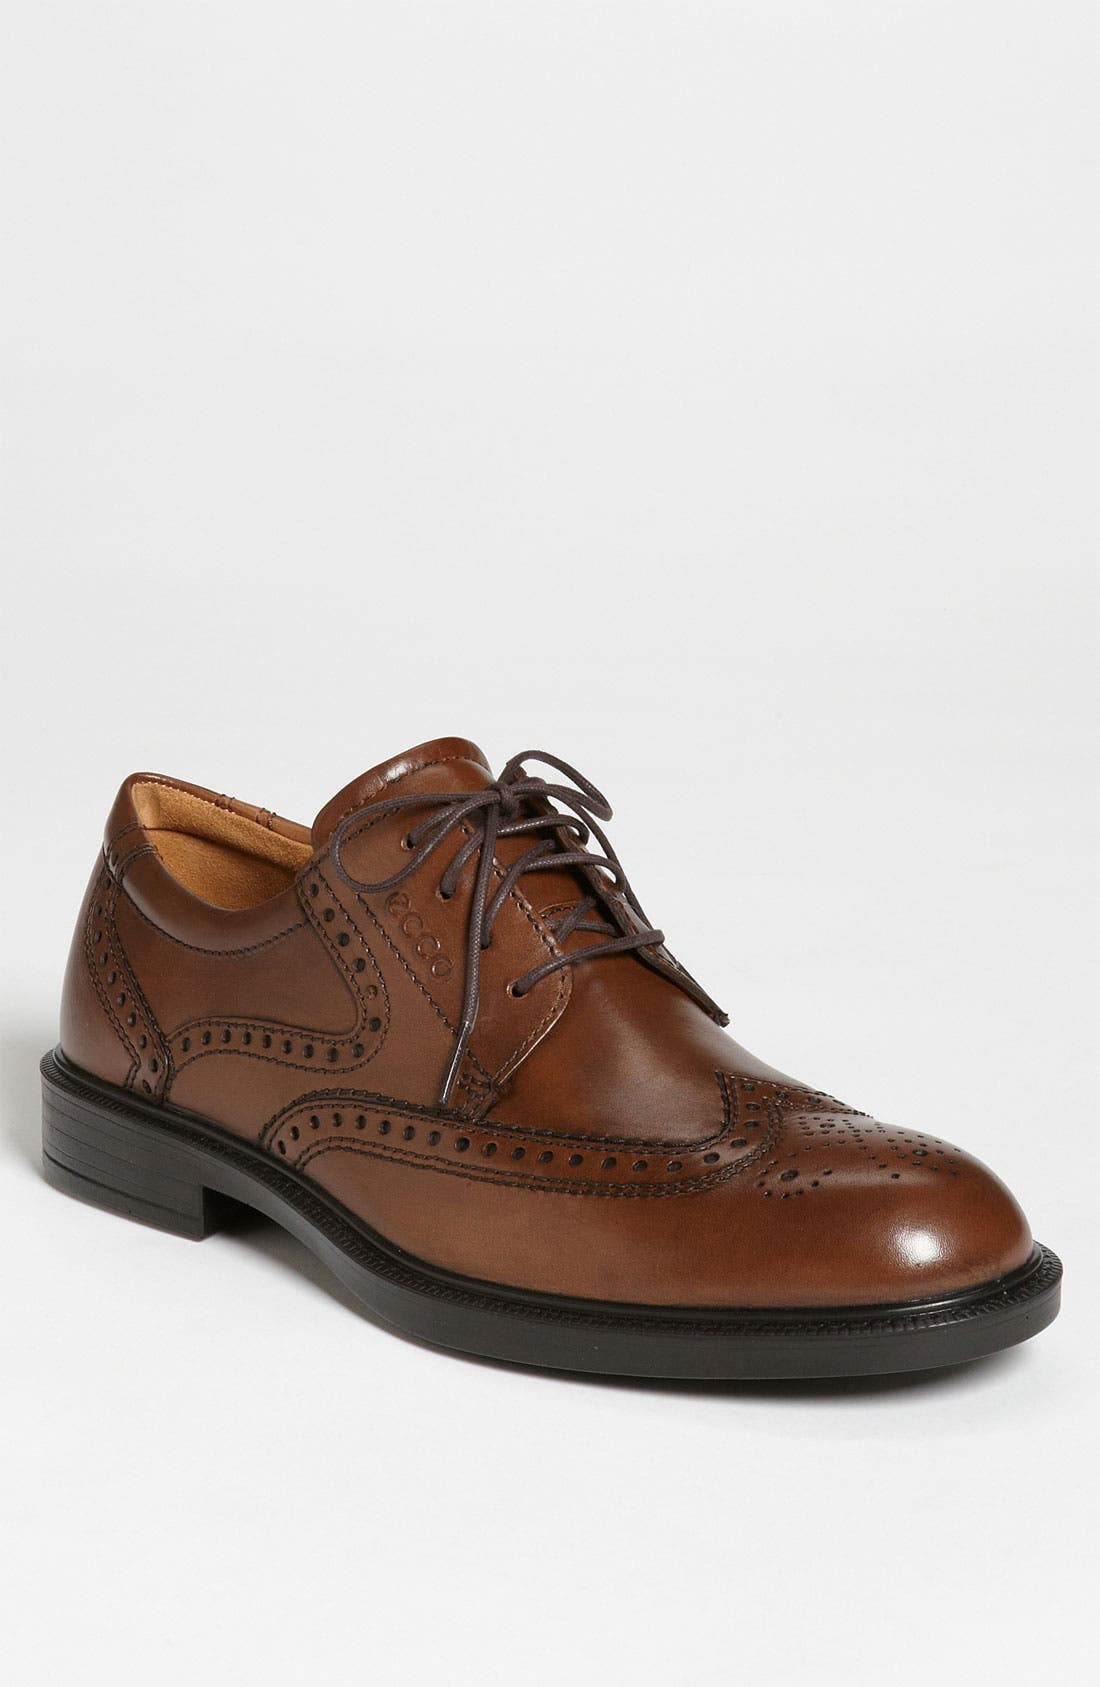 Alternate Image 1 Selected - ECCO 'Atlanta' Wingtip Oxford